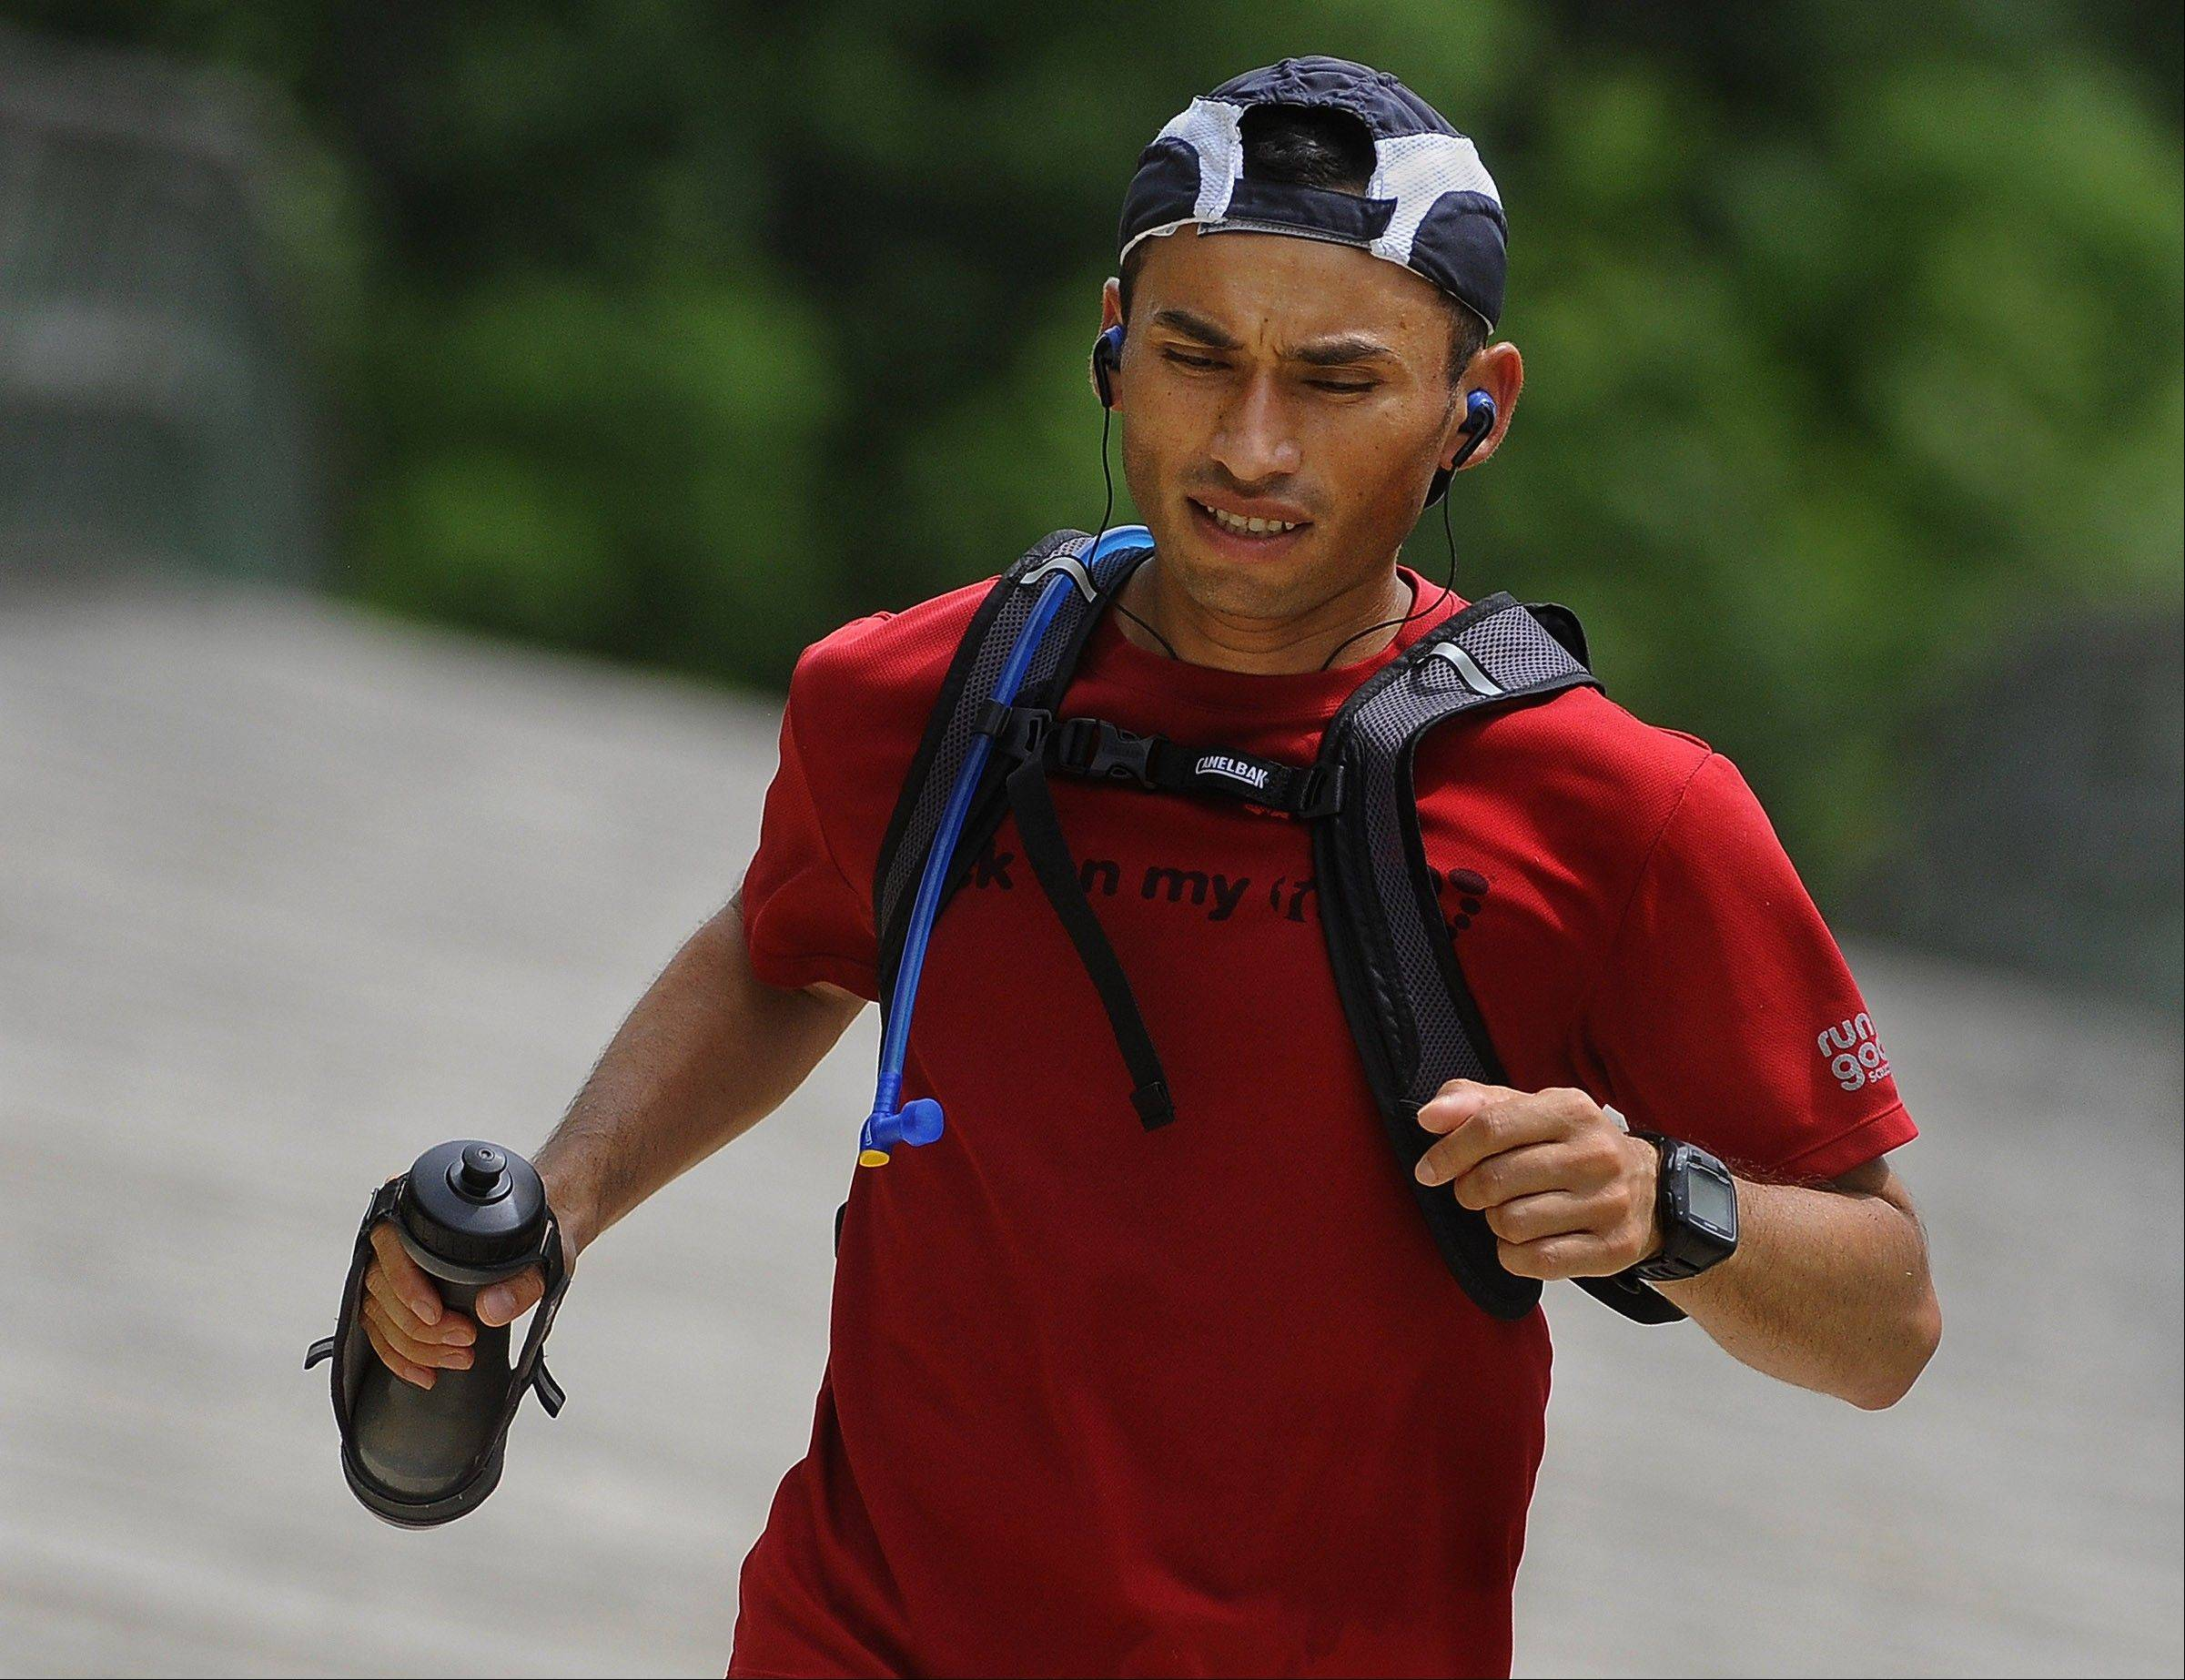 Walter Barrera at the end of a 20-mile training run. Barrera was addicted to crack and crystal meth for years. These days he traded that addiction for another: long-distance running.